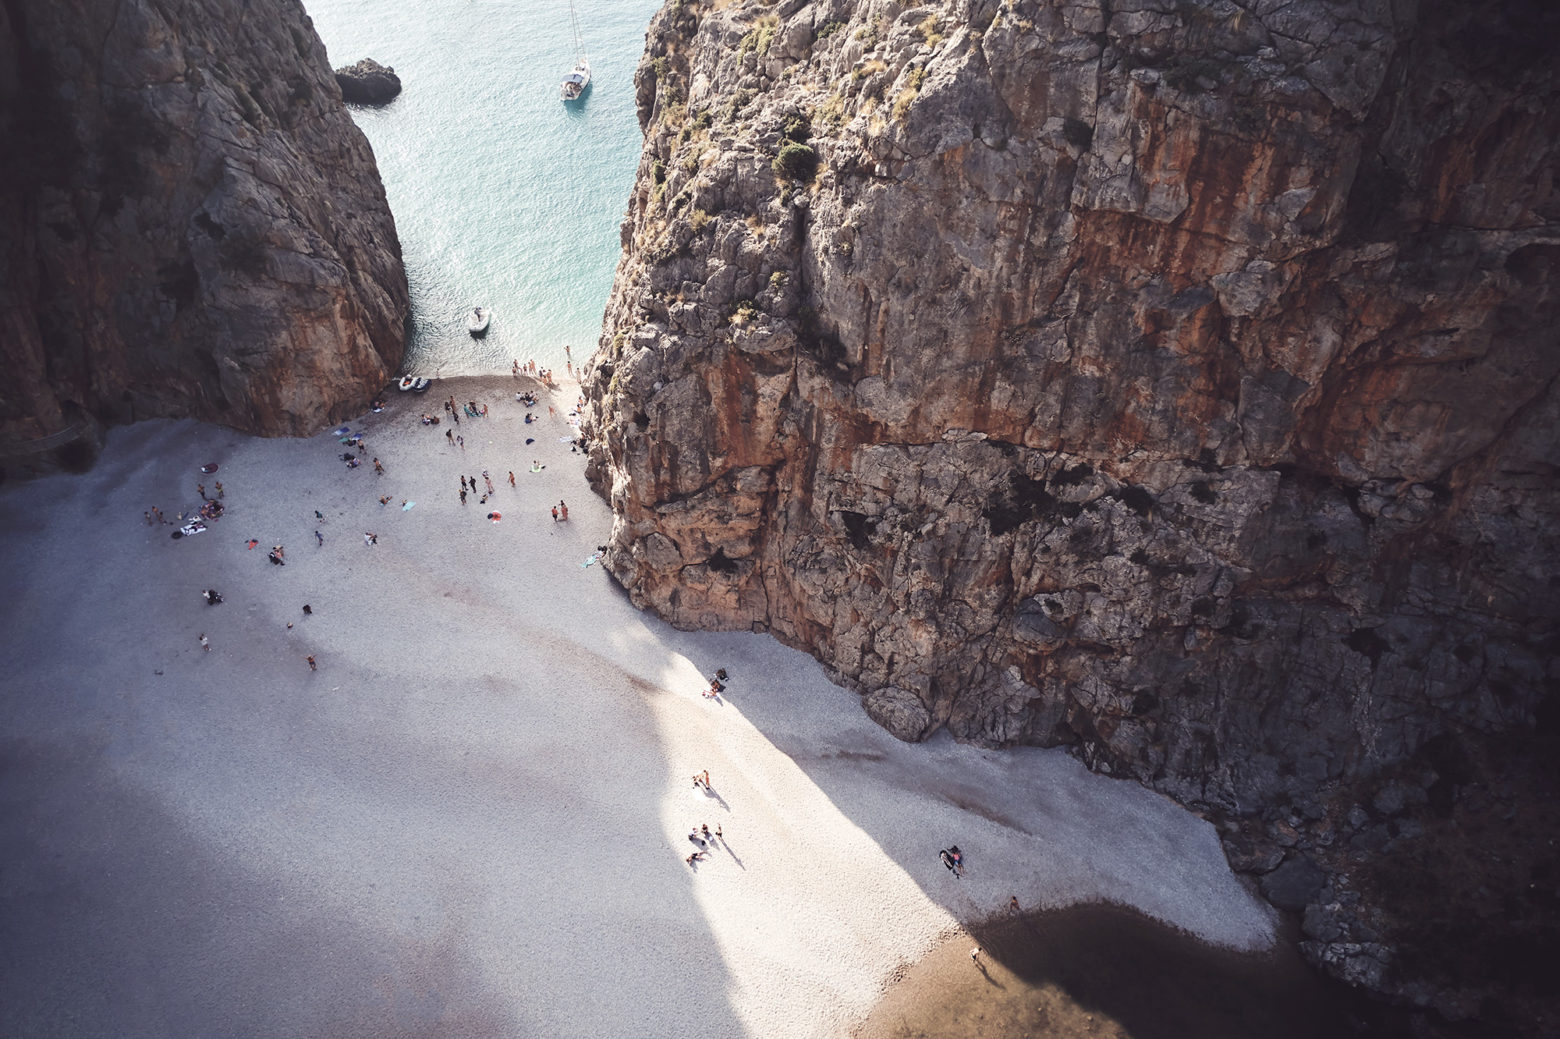 One of the coolest spots I've seen, Sa Calobra